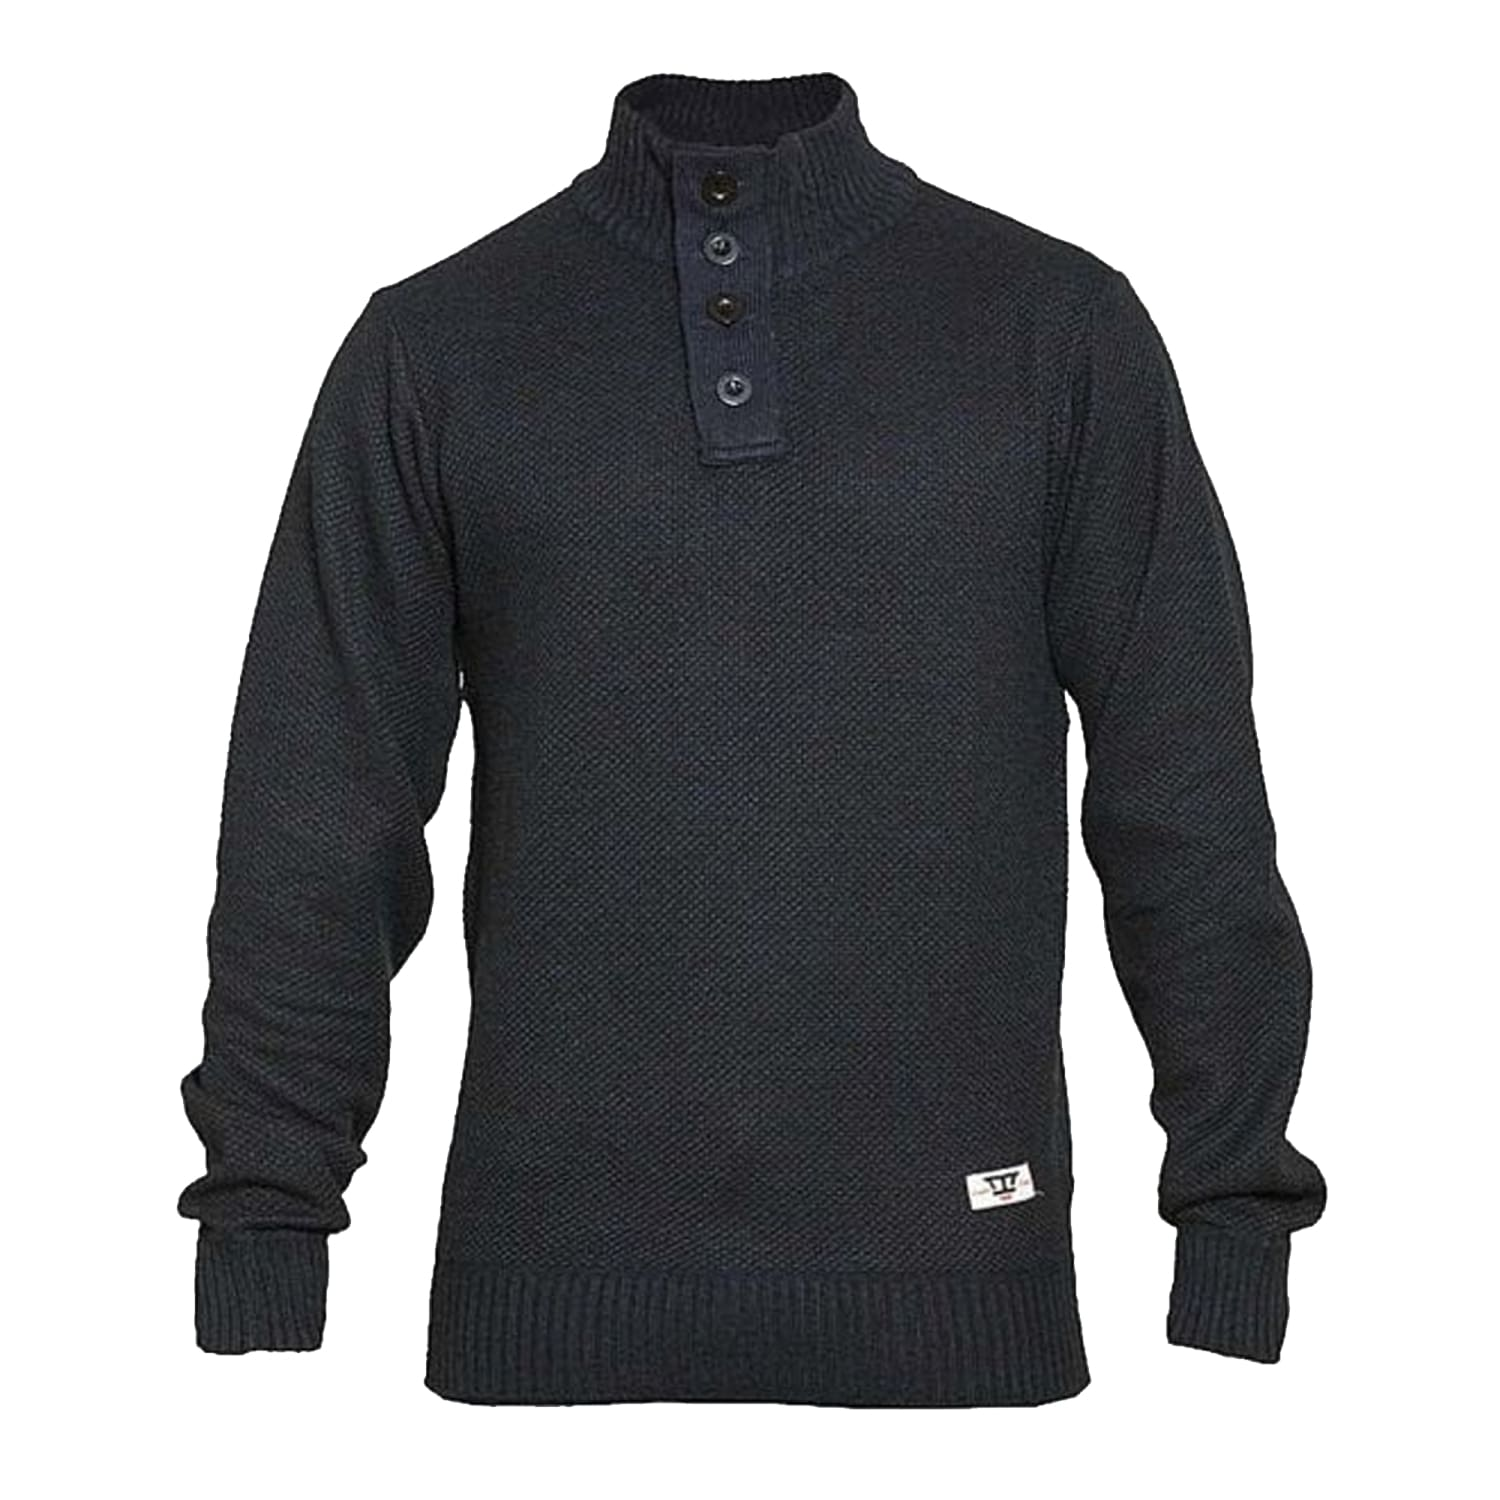 D555 Quarter Button / Zip Sweater - KS80552 - Zane - Navy Marl 1